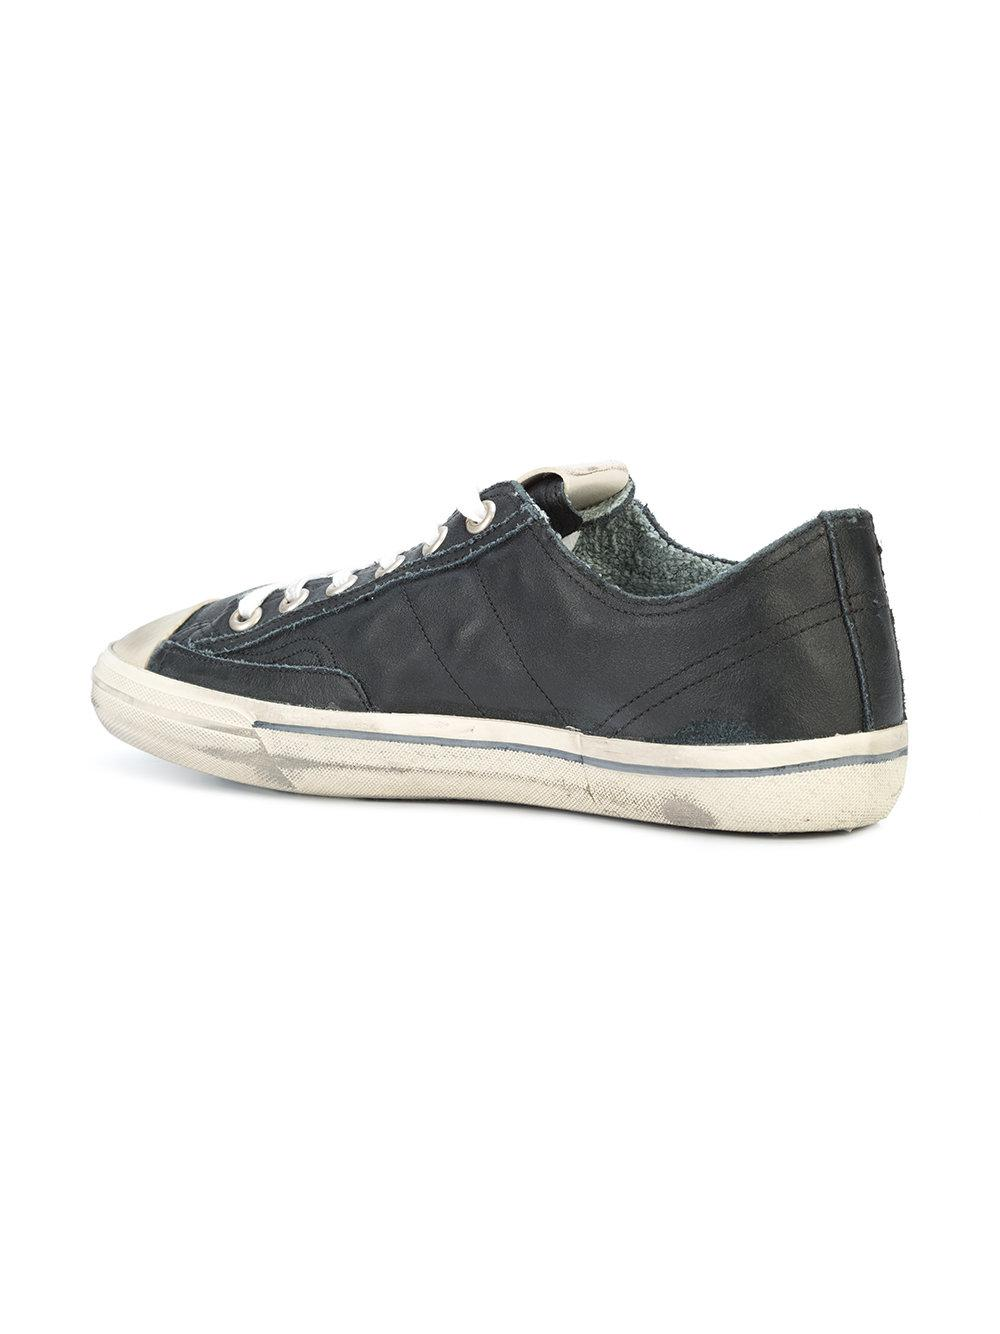 ffd0aa3096ab0 Golden Goose Deluxe Brand - Black V-star 2 Sneakers for Men - Lyst. View  fullscreen